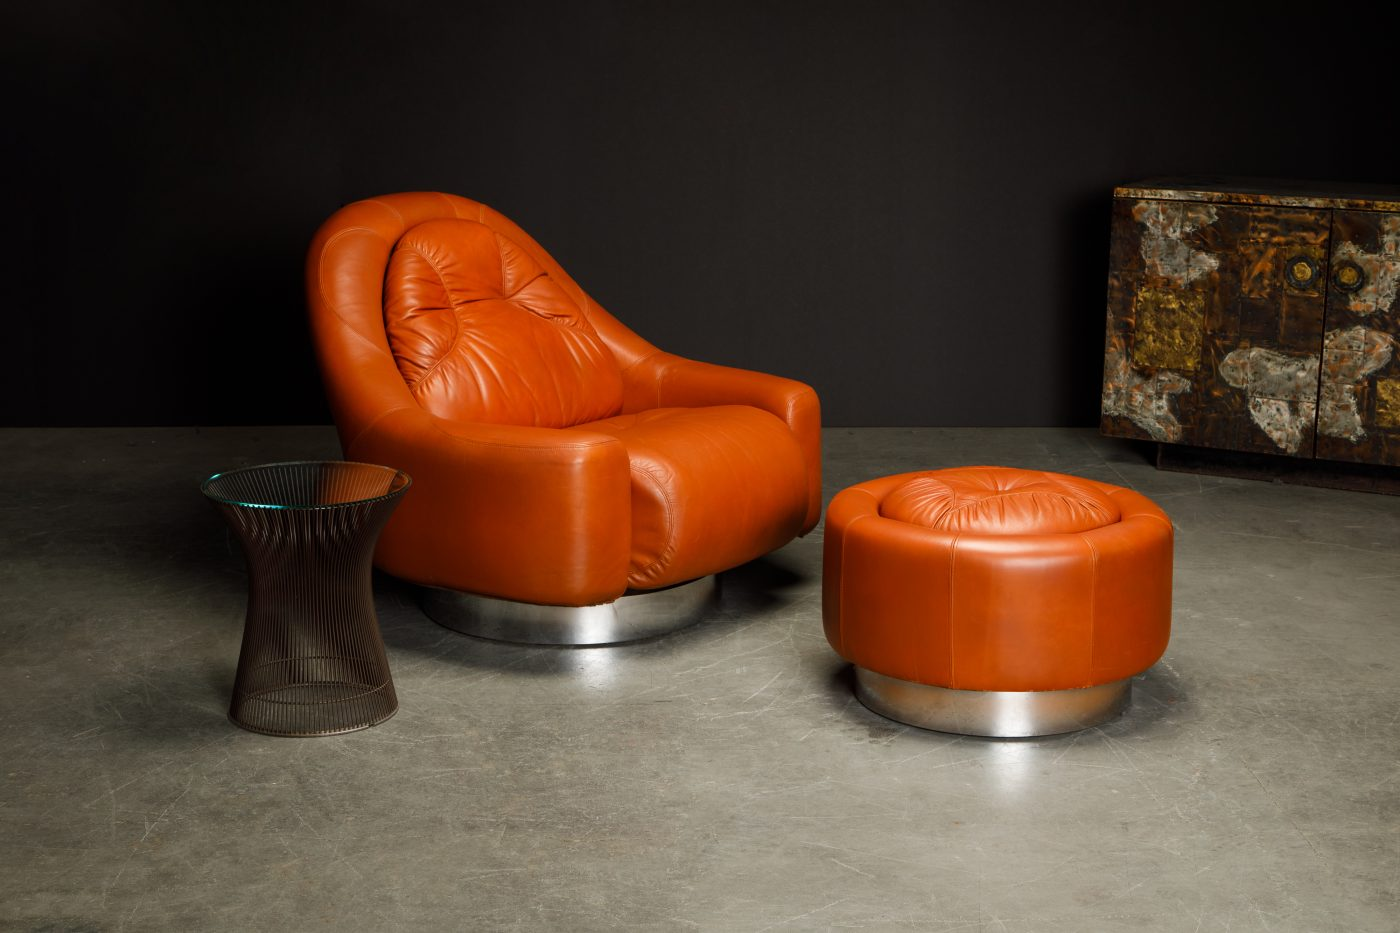 A circa-1971 Zator swivel chair and ottoman by Guido Faleschini for Italian maker i 4 Mariani, offered by Automaton